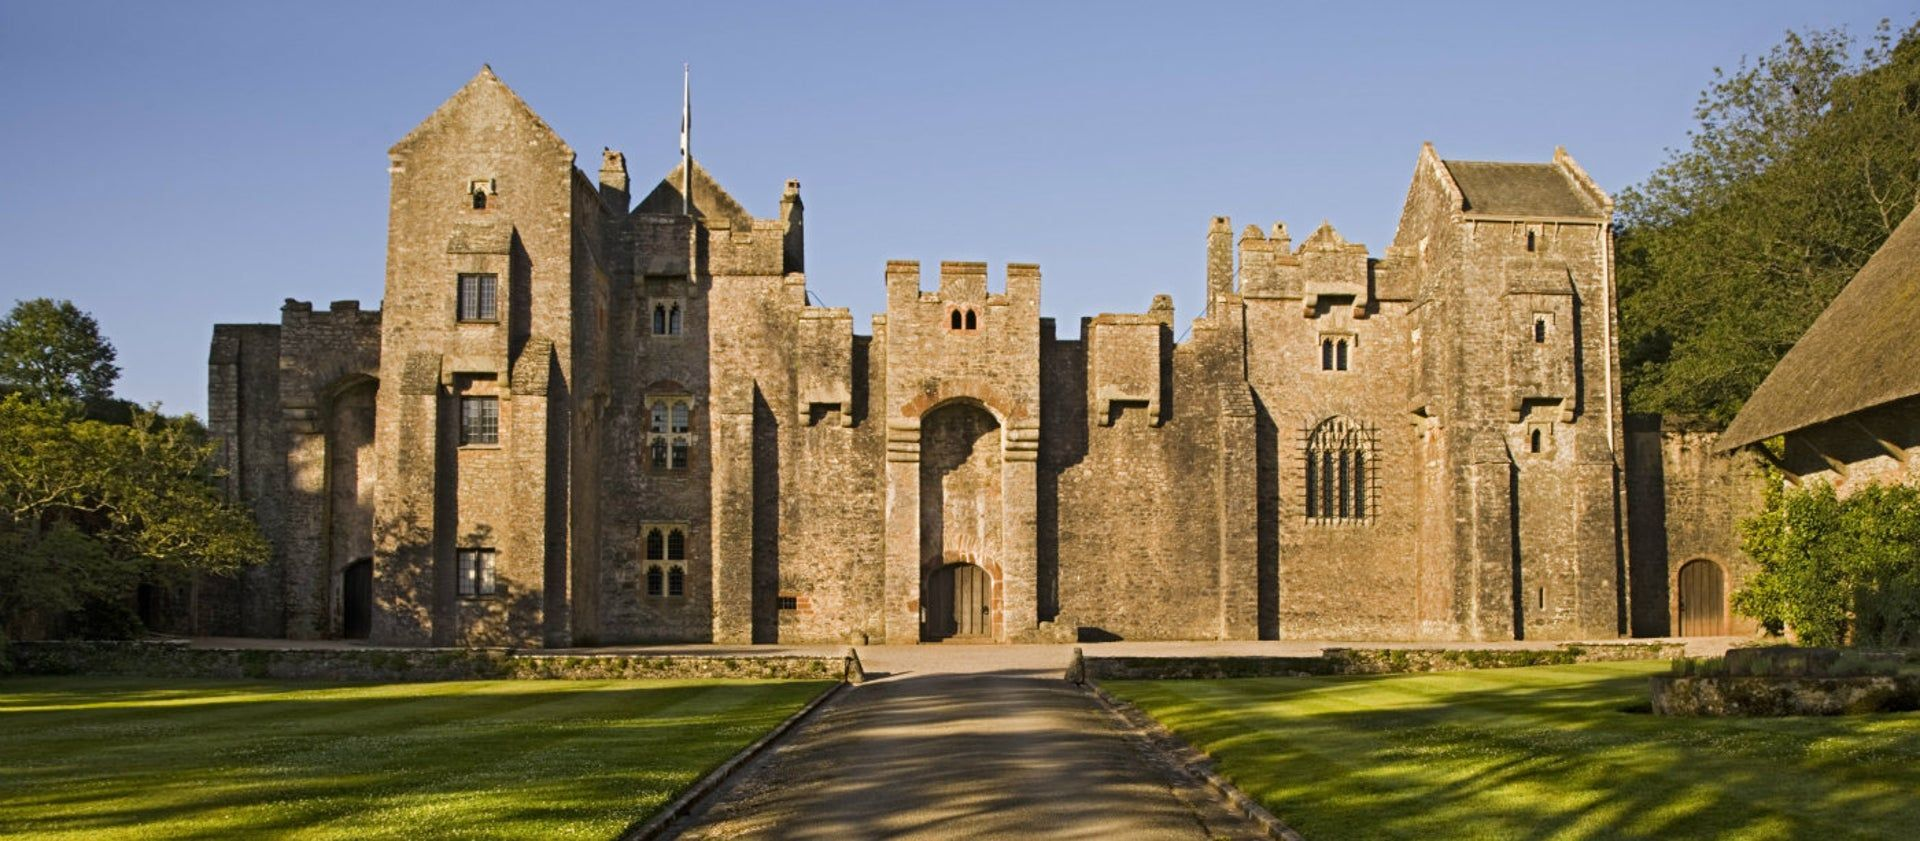 The National Trust's Compton Castle, Devon, is a dramatic fortified manor house ... -  The National Trust's Compton Castle, Devon, is a dramatic fortified manor house and small formal  - #castle #compton #Containergarden #Cottagegardens #devon #dramatic #Englishgardens #Formalgardens #fortified #Gardenideas #hedges #Herbgardendesign #house #Landscapedesign #manor #Moderngardendesign #Moderngardens #National #trust #Trusts #Waterfeatures